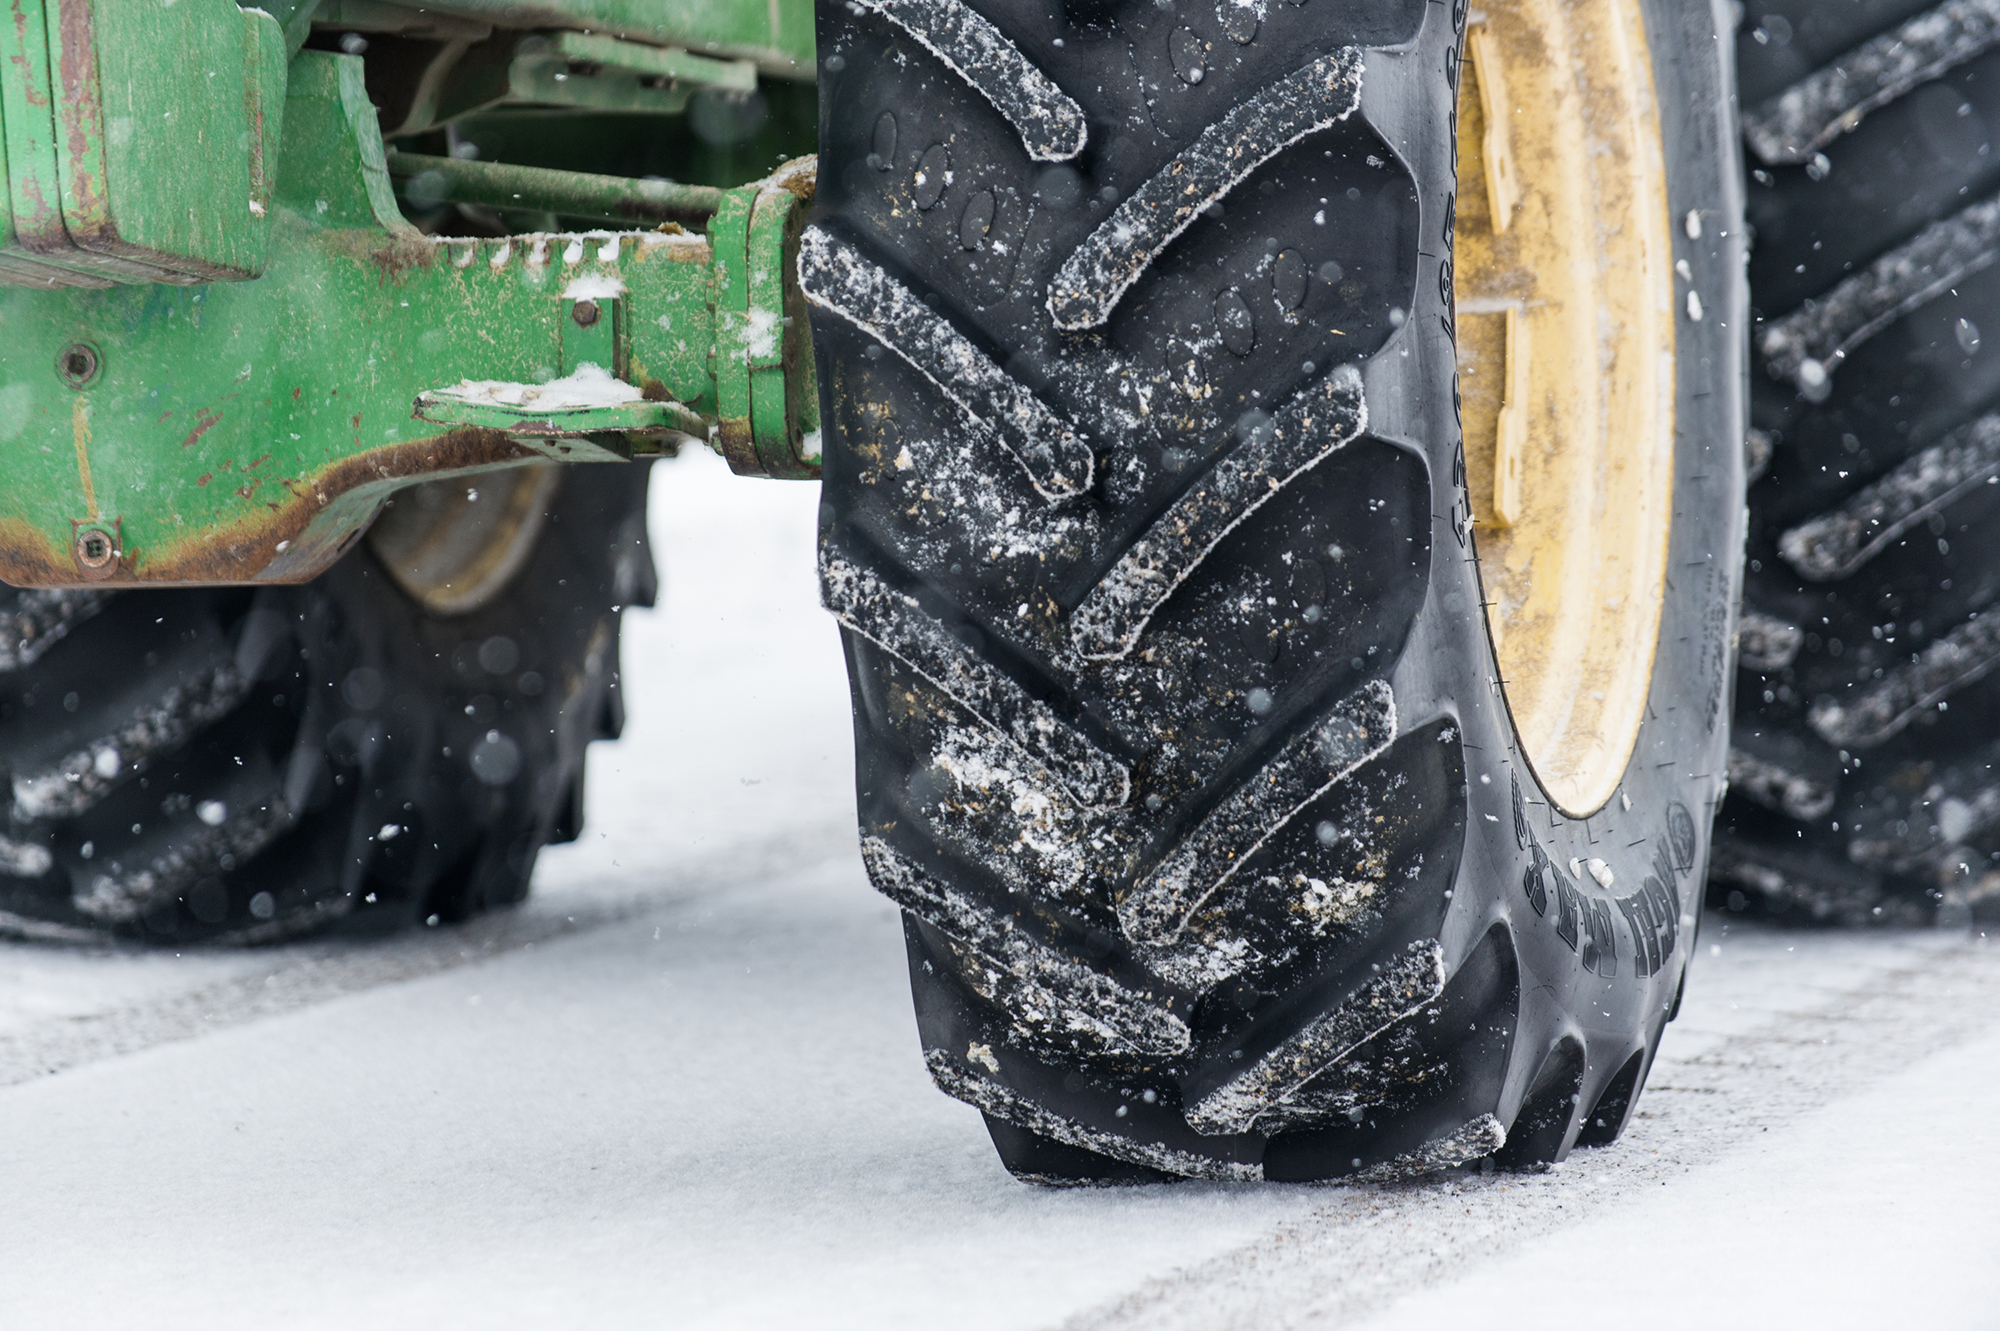 Close up of tractor tire in the snow